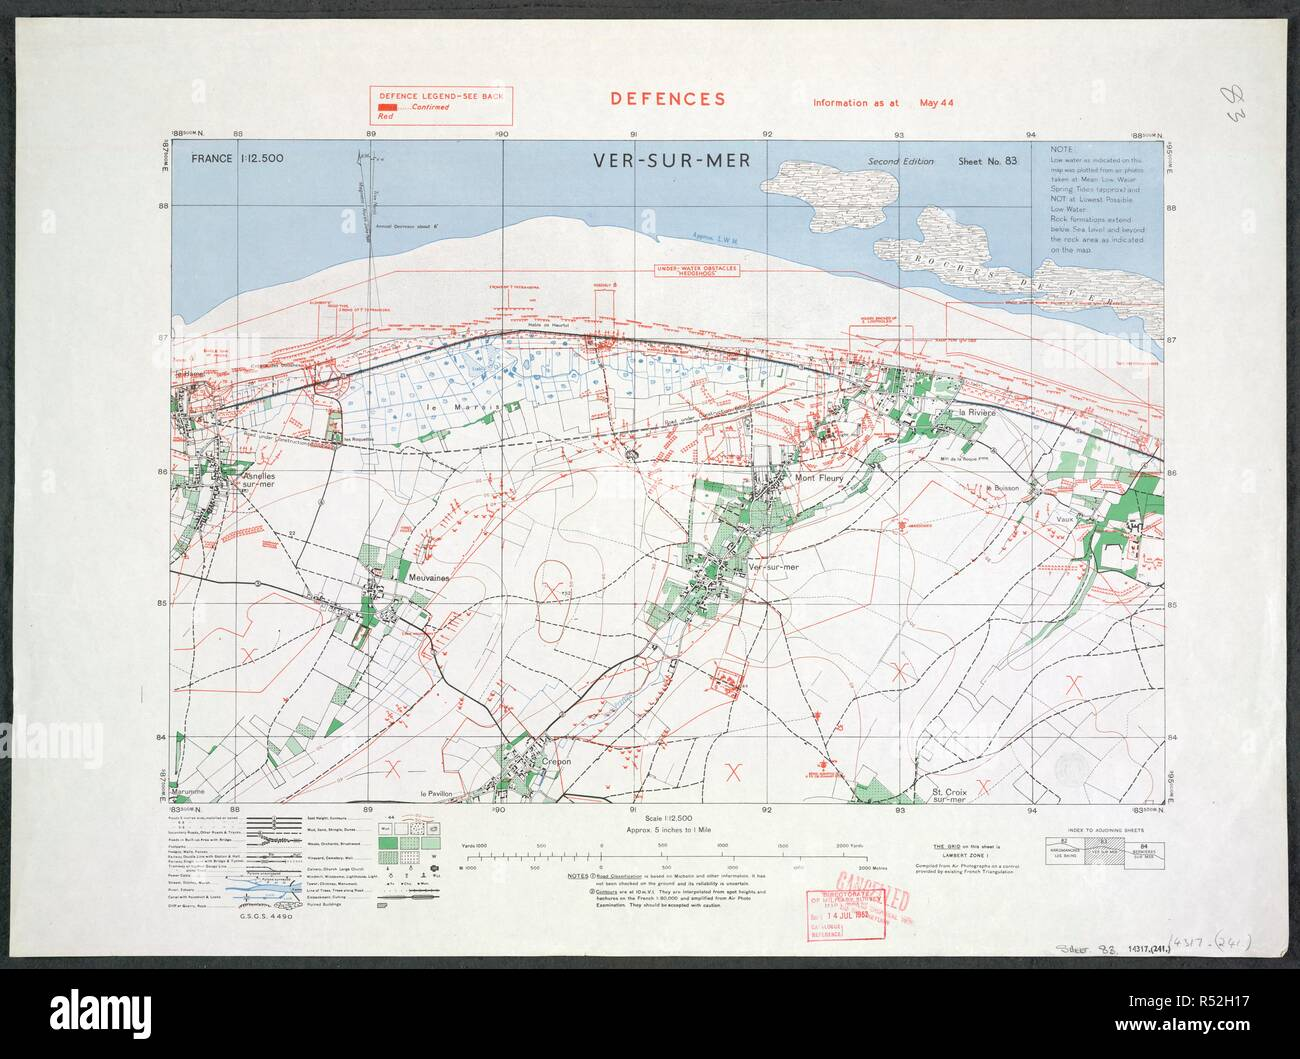 D Day Beaches Normandy France Map on